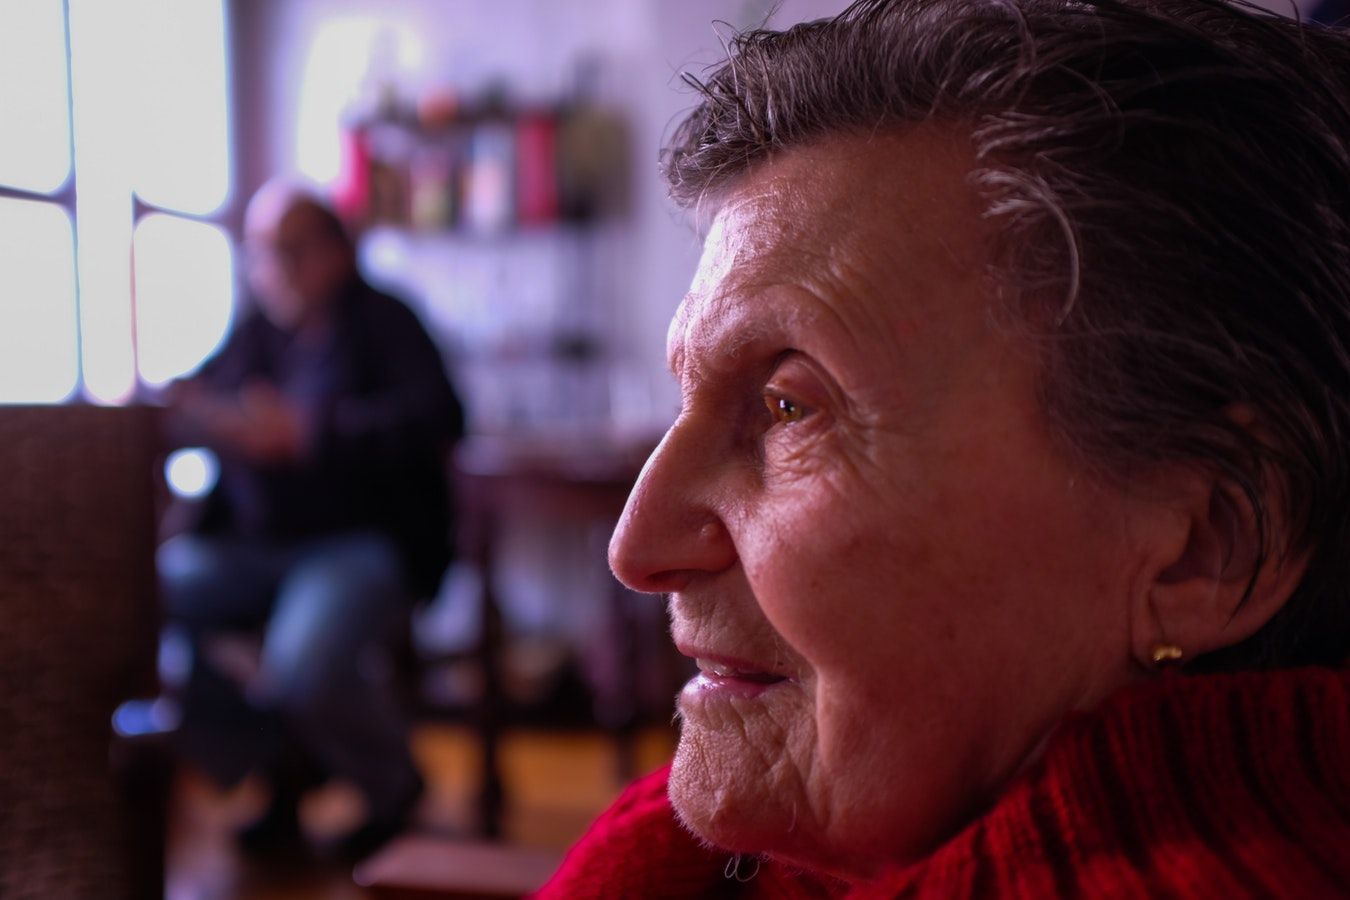 An older woman confused about where she is. Confusion is one of the stages of dementia.